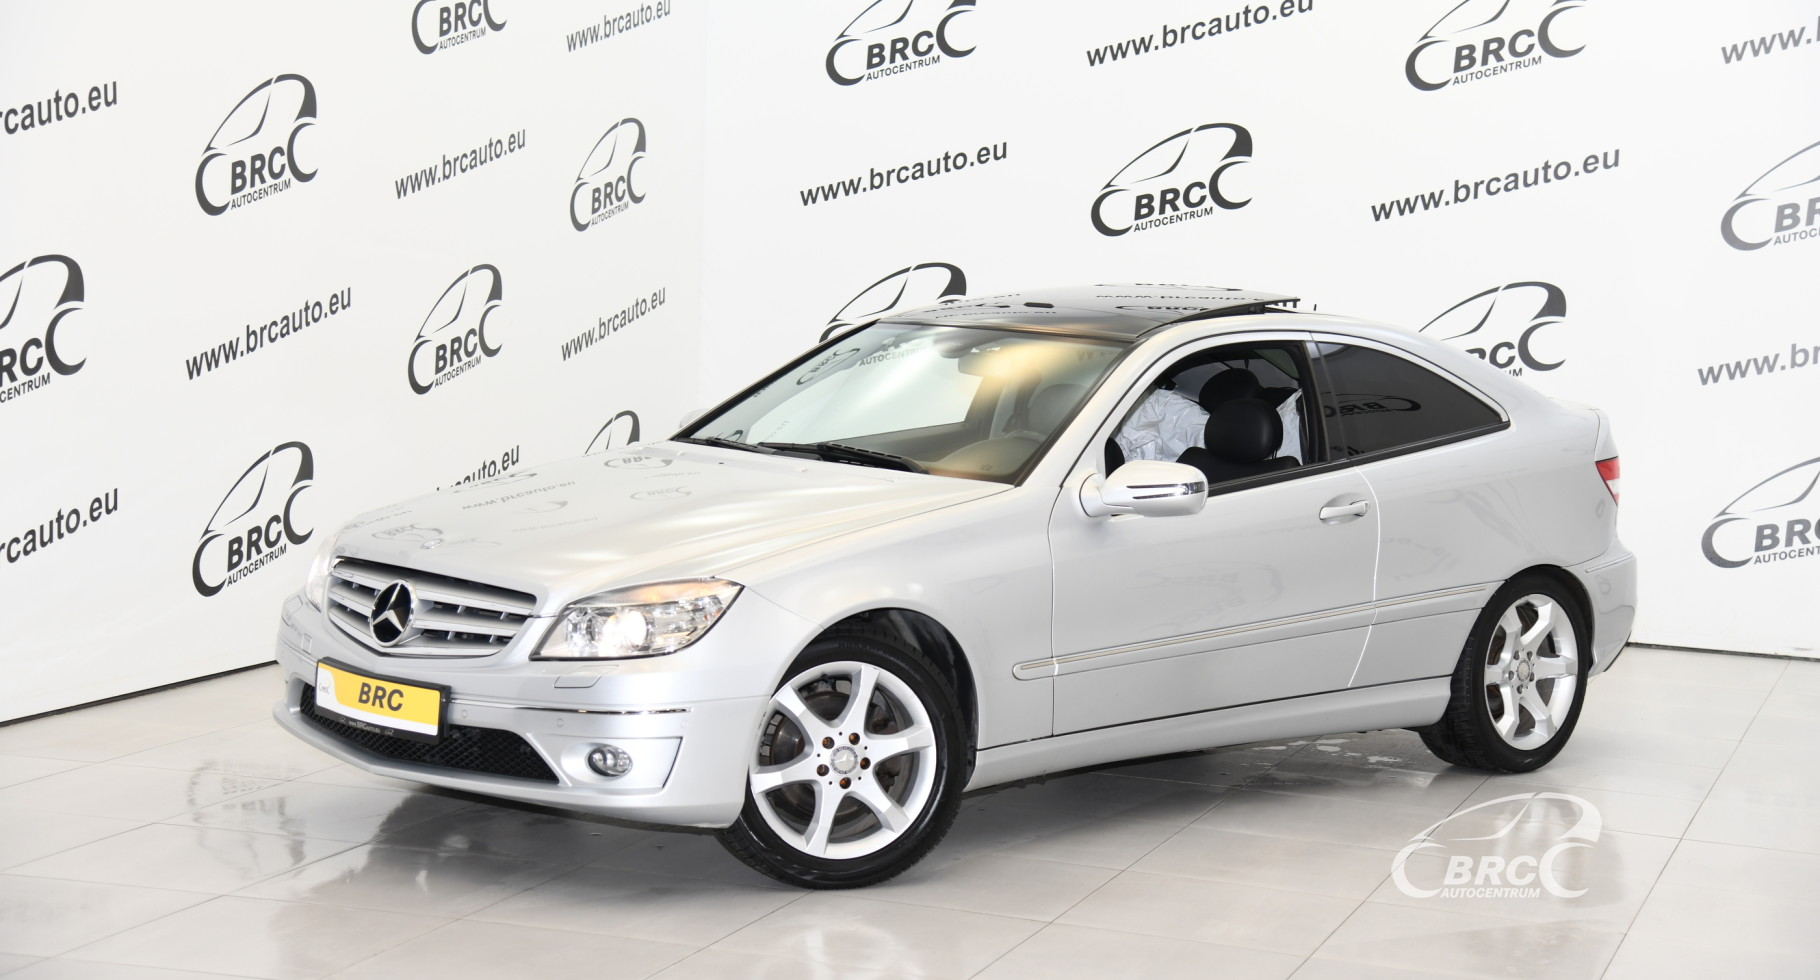 Mercedes-Benz CLC 230 Coupe Automatas